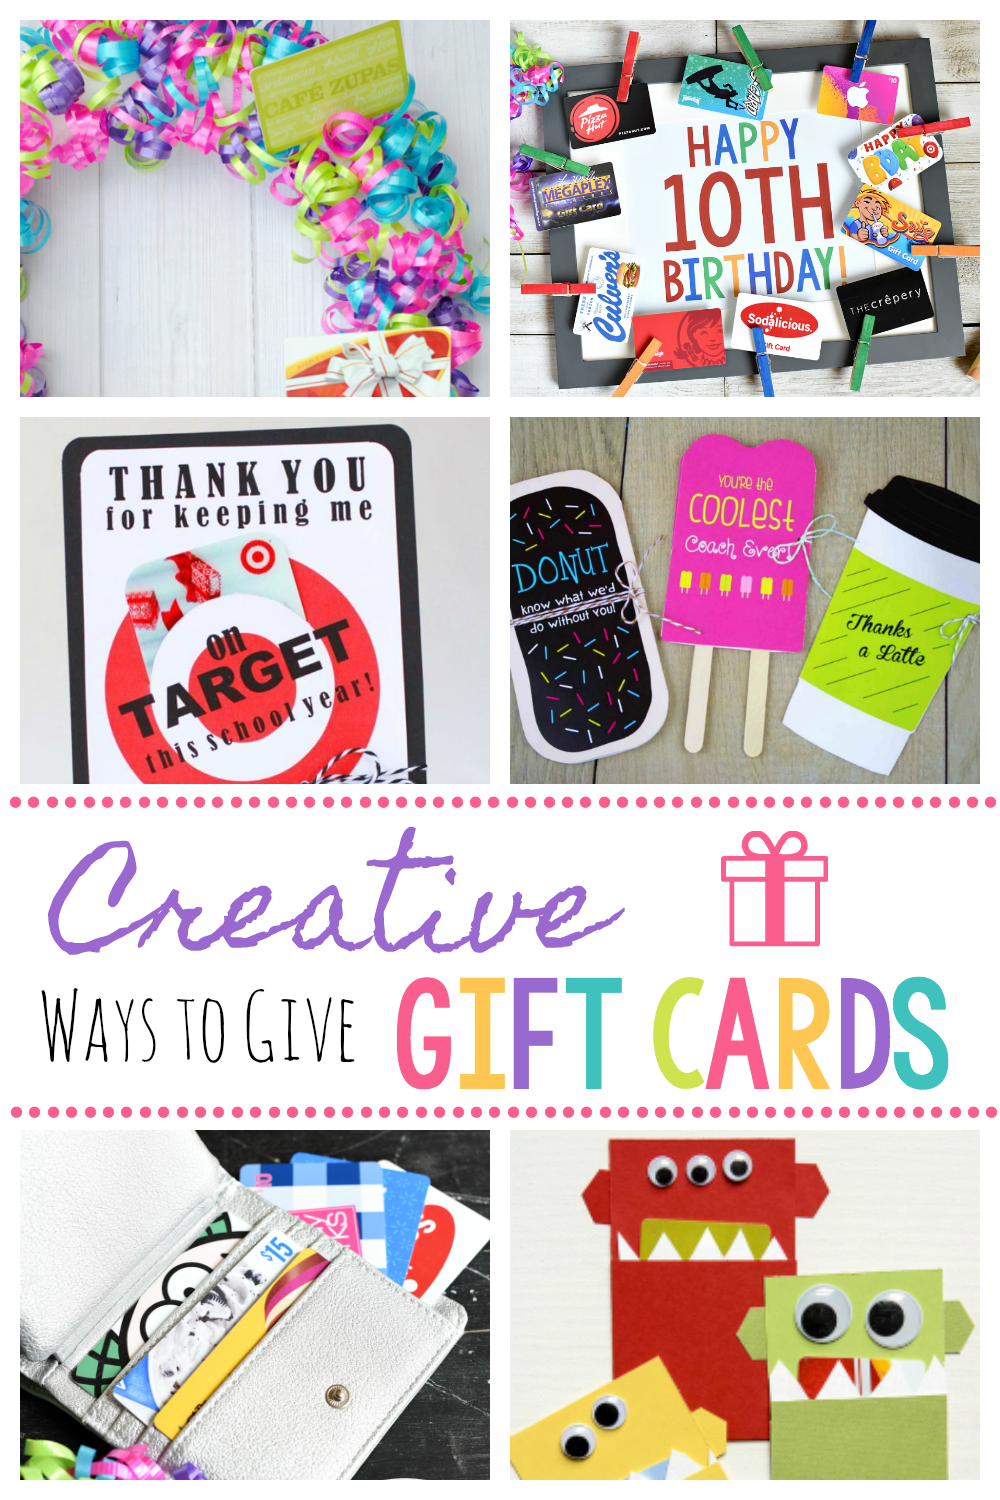 Creative Ways To Give Gift Cards Fun DIY Card Giving Ideas Giftcards Giftcardideas Gifts